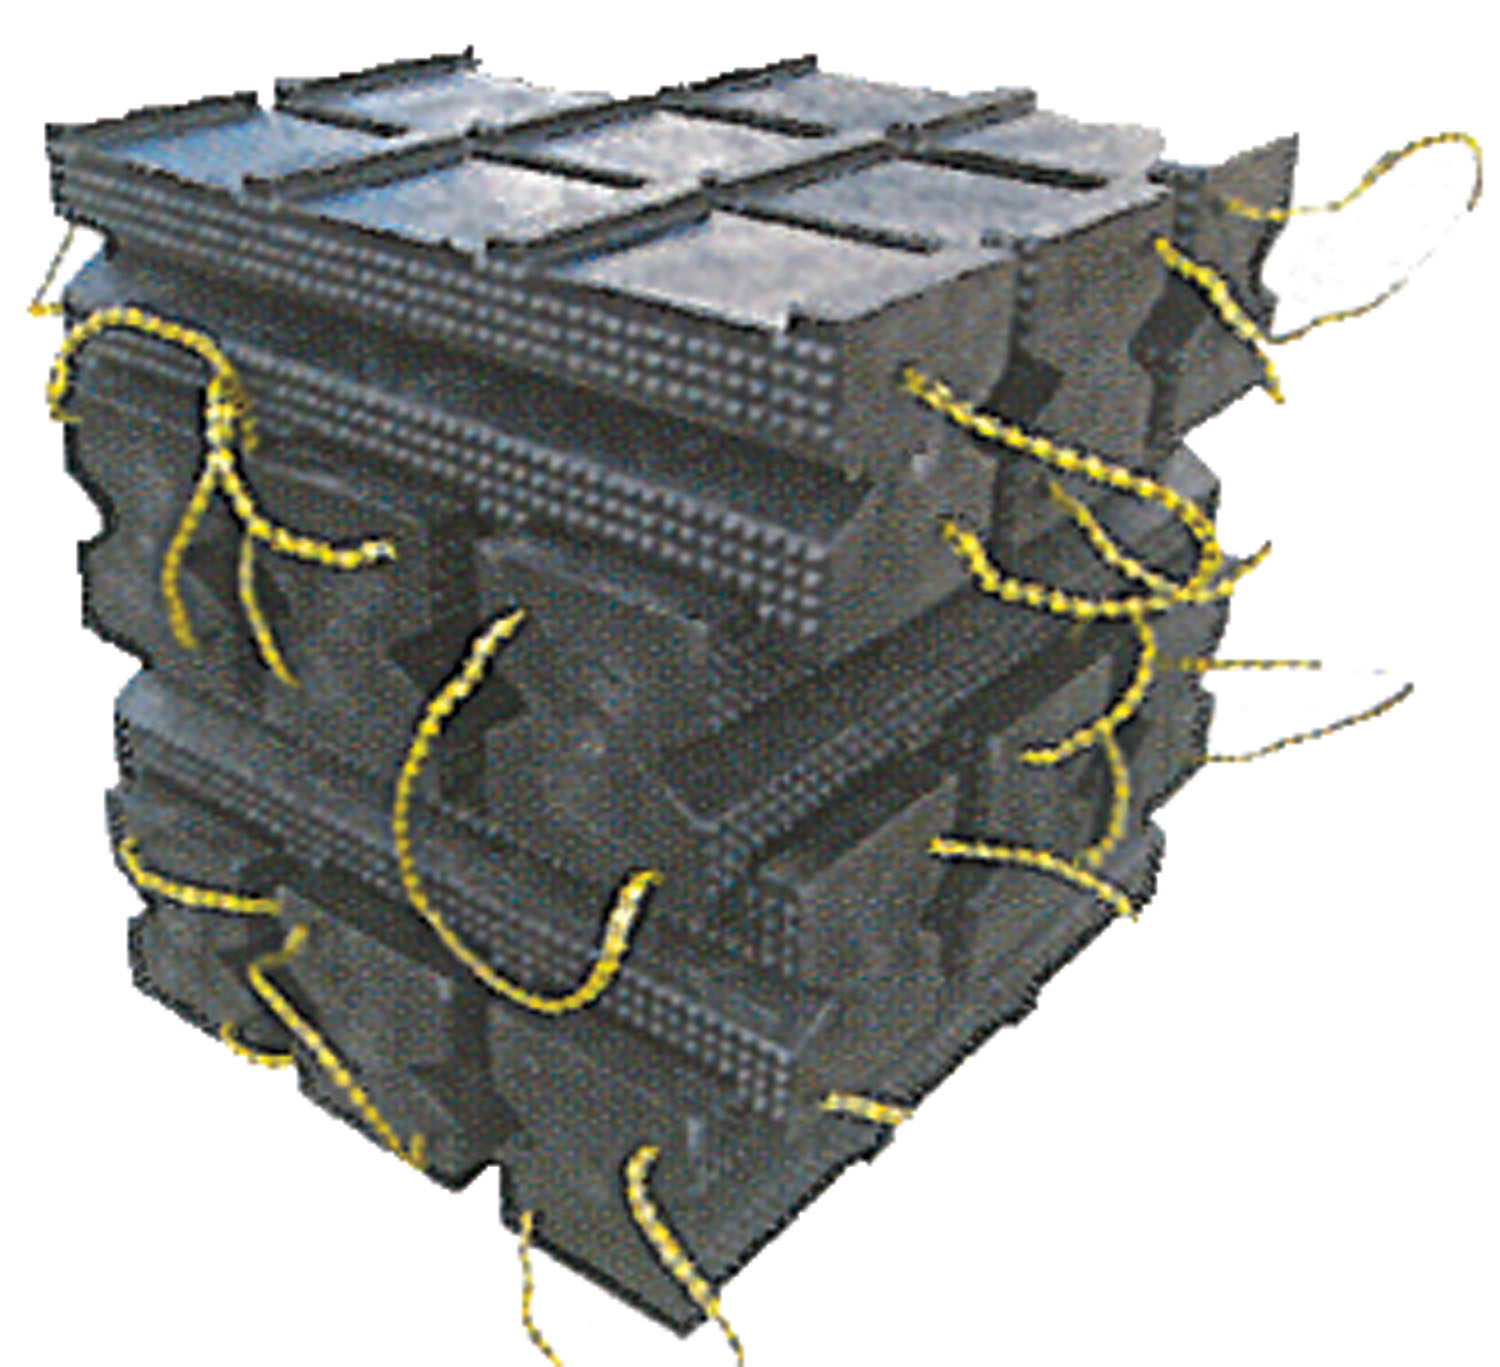 12PC SUPER STACKER CRIBBING SE